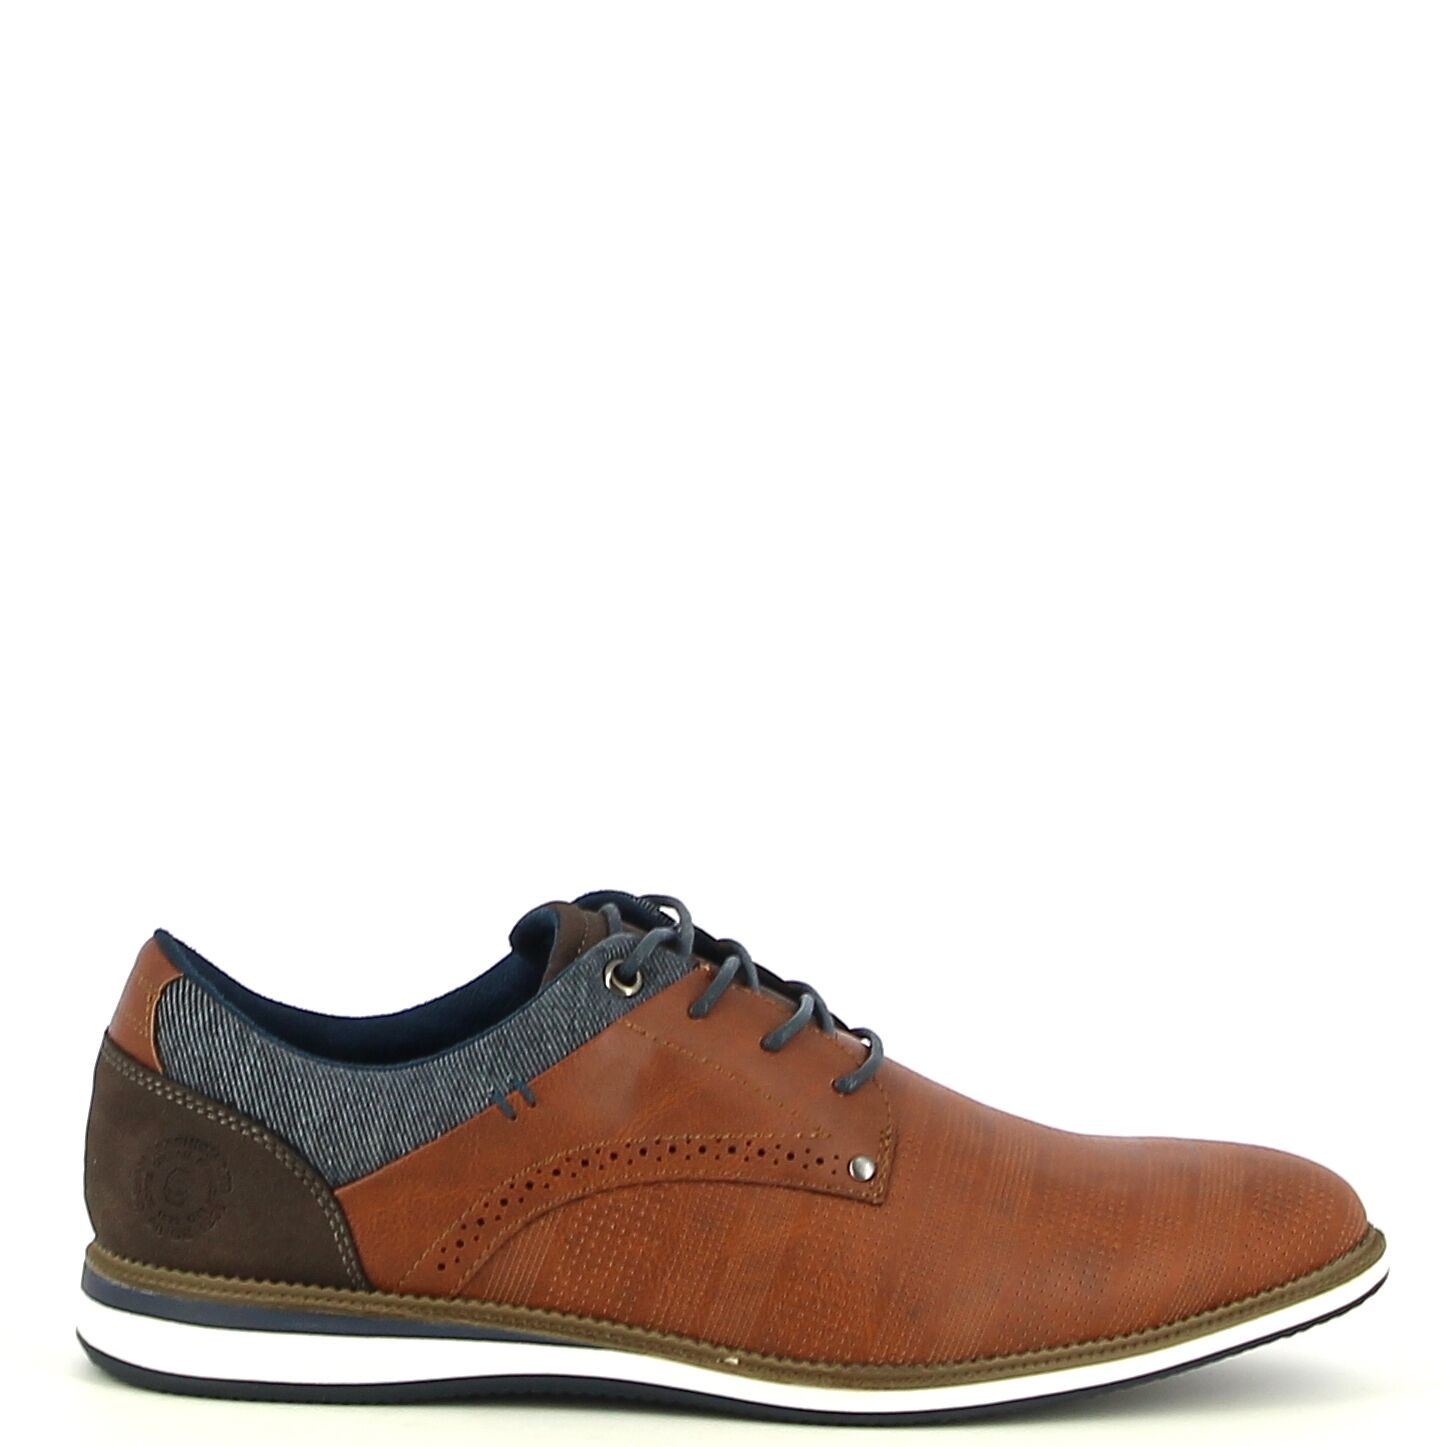 Ken Shoe Fashion - Camel veterschoen met blauwe details